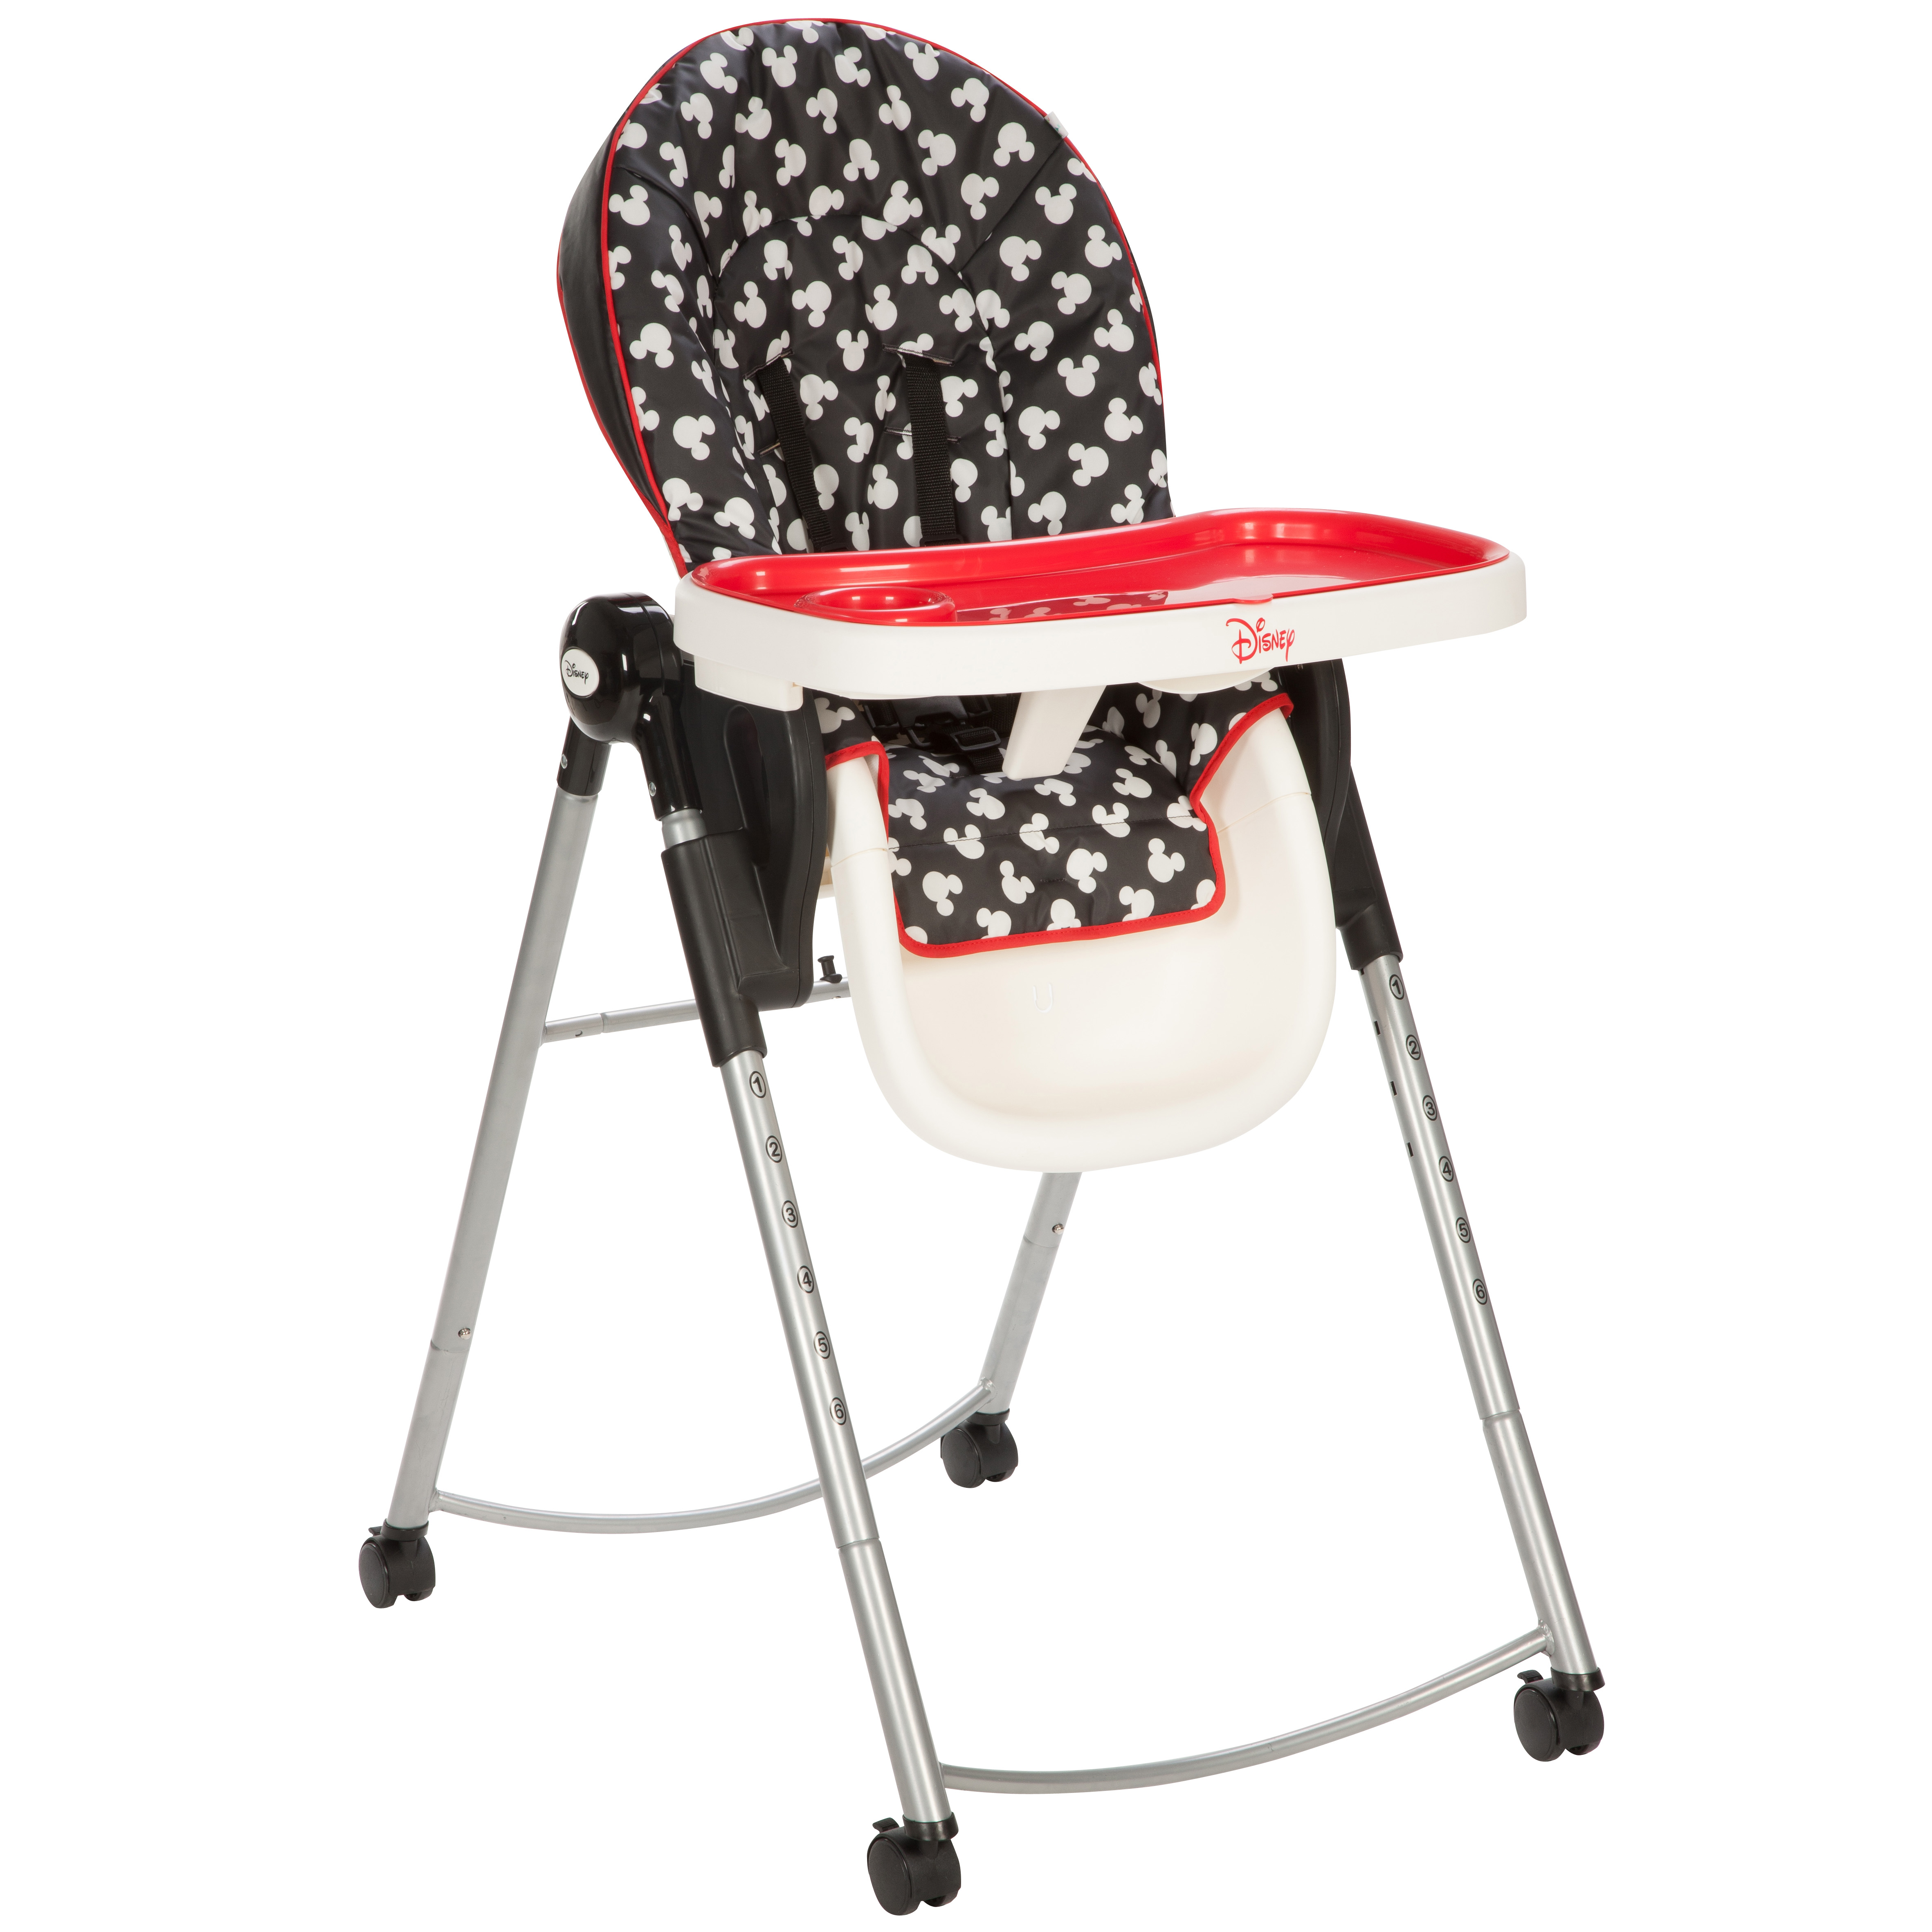 Disney Adjustable High Chair, Mickey Silo